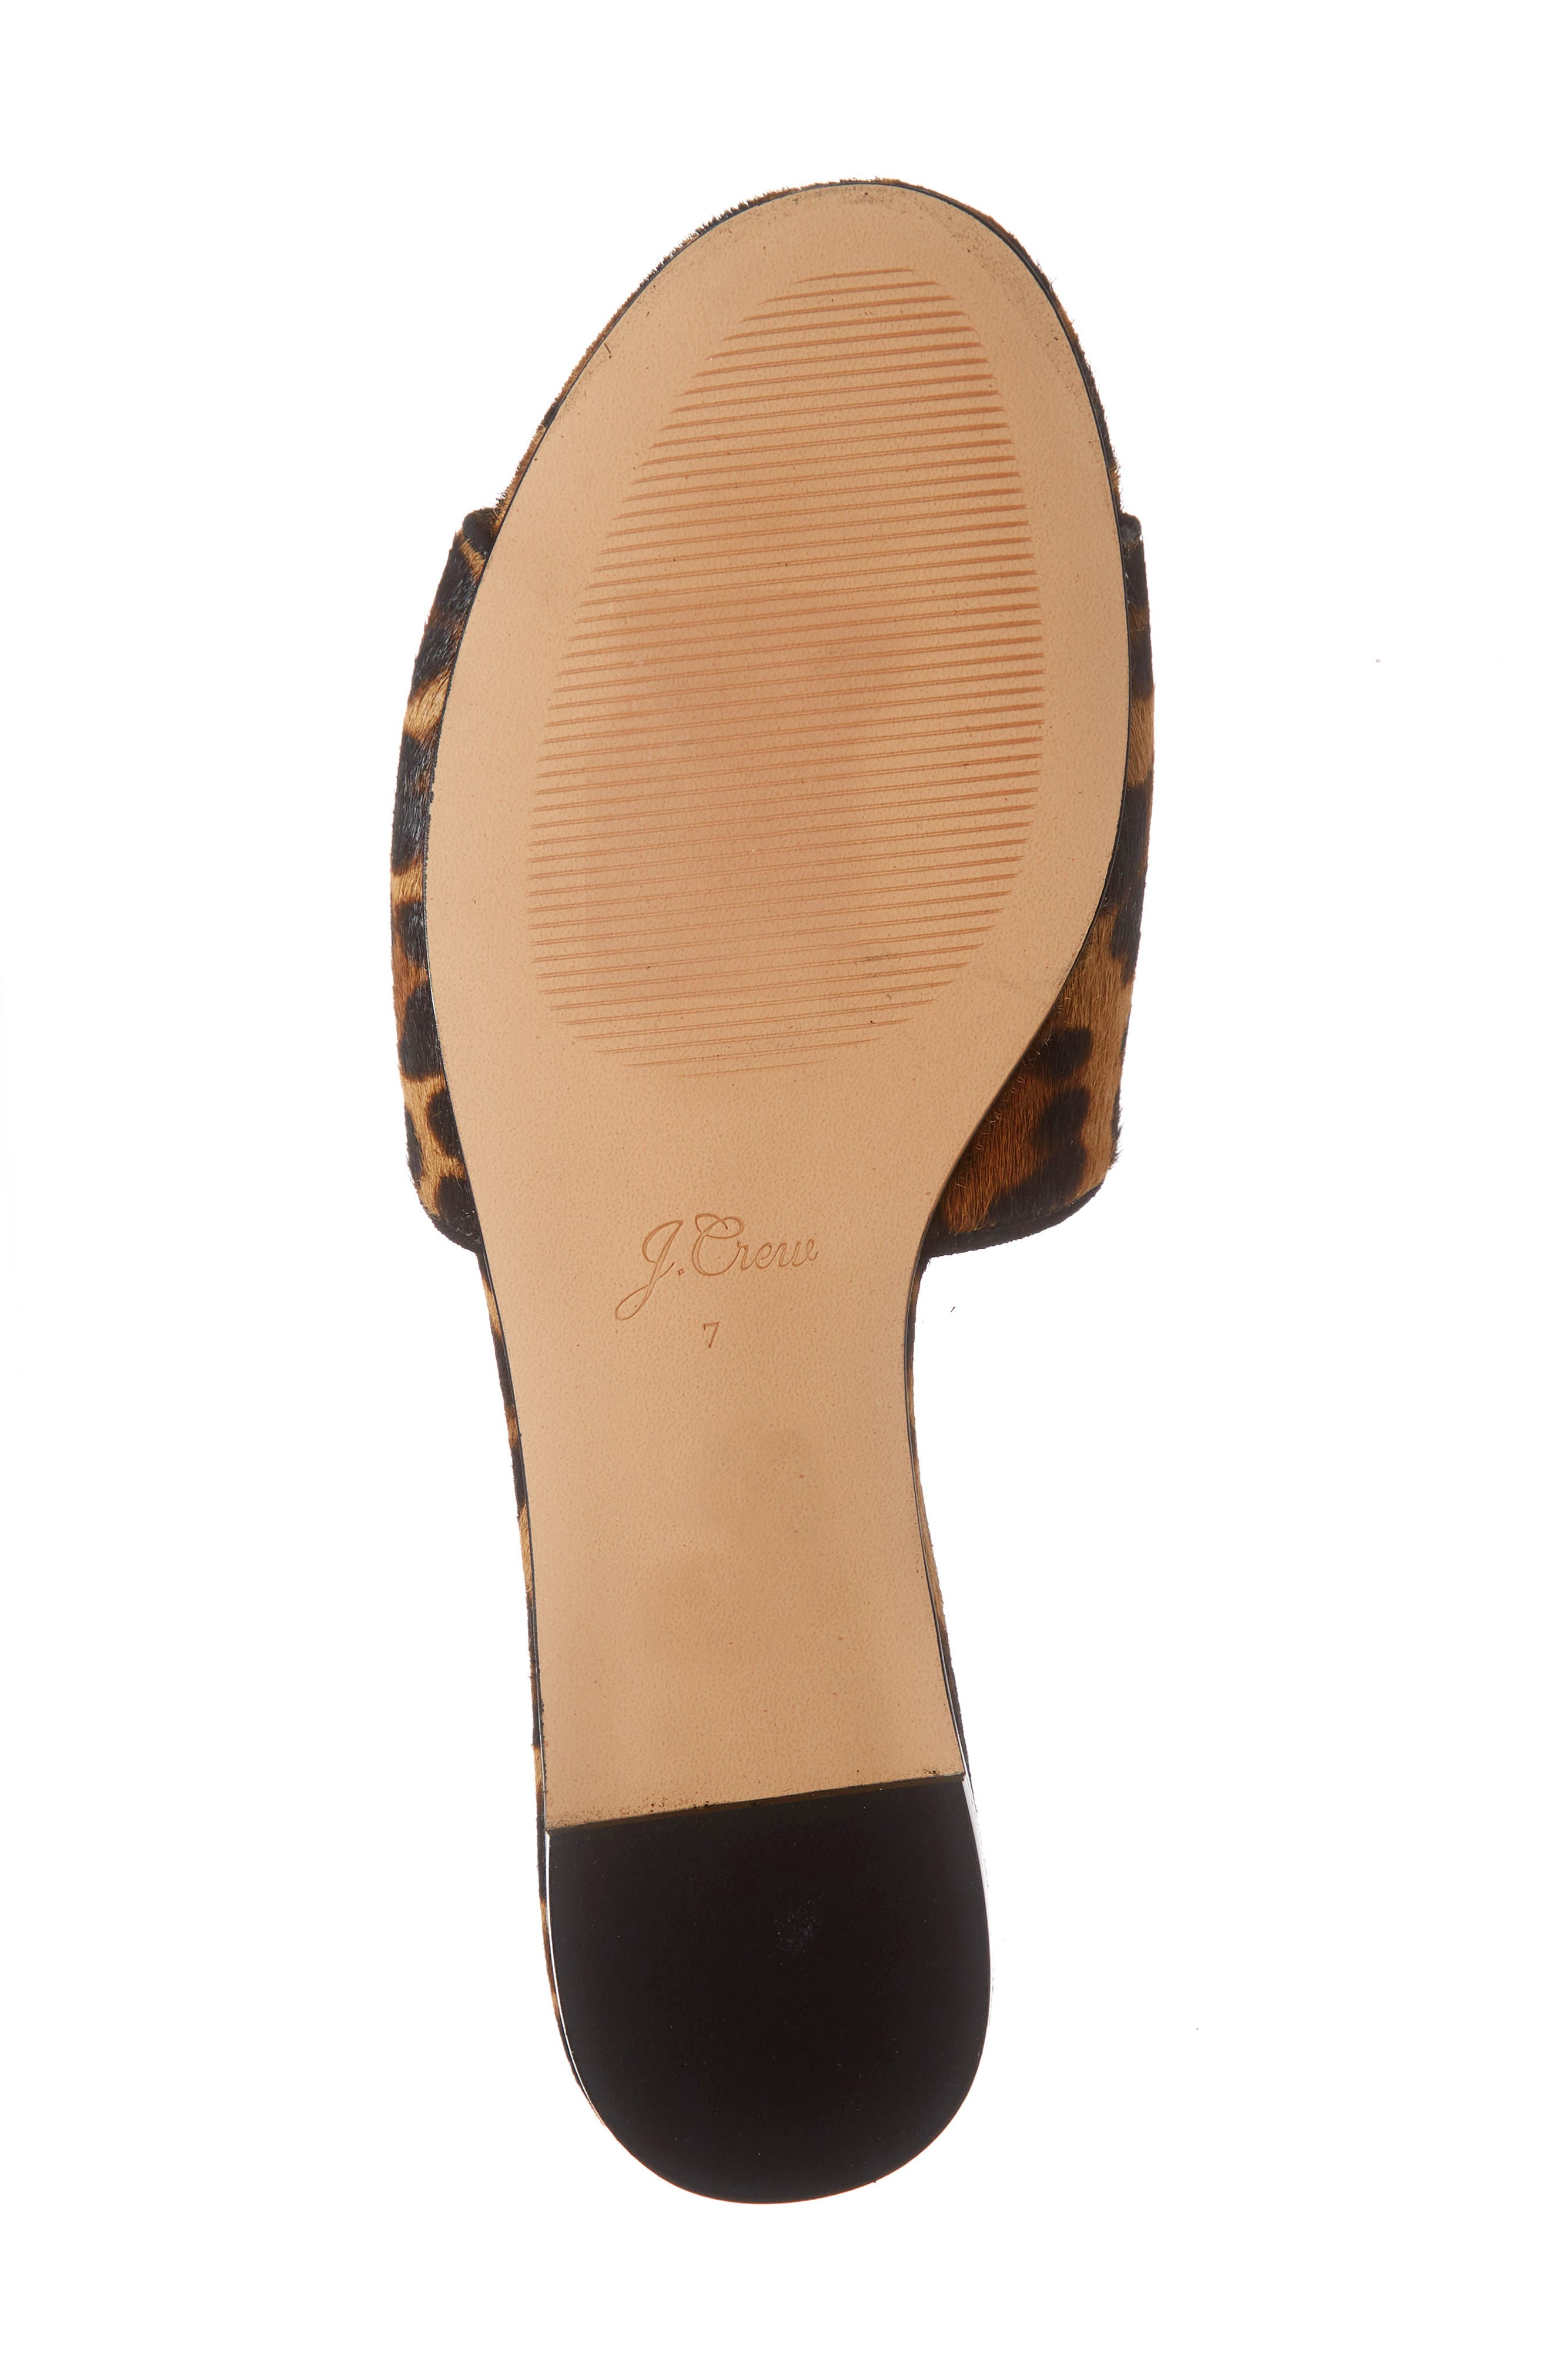 J.CREW, Cora Leopard Print Calf Hair Slide Sandal, Alternate thumbnail 6, color, LEOPARD PRINT CALF HAIR